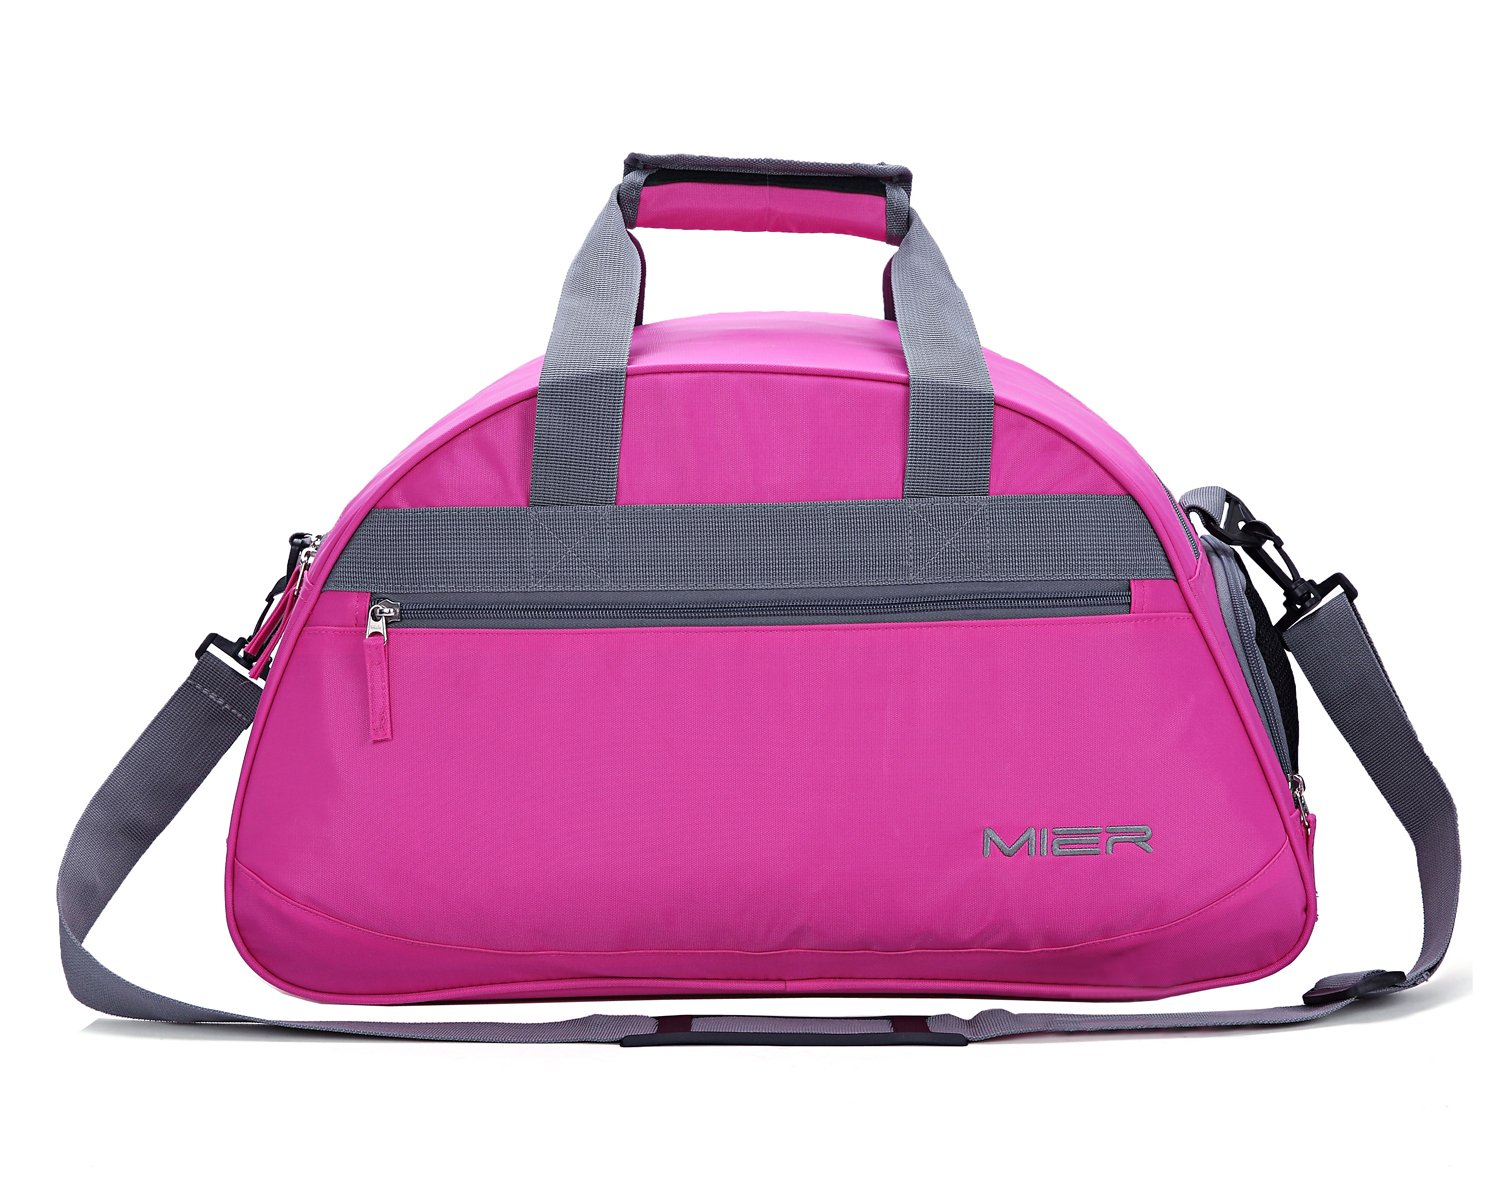 MIER 20 Sports Gym Bag Travel Duffel Bag with Shoes Compartment for Women, Men MIERLIFE-SPO002-1